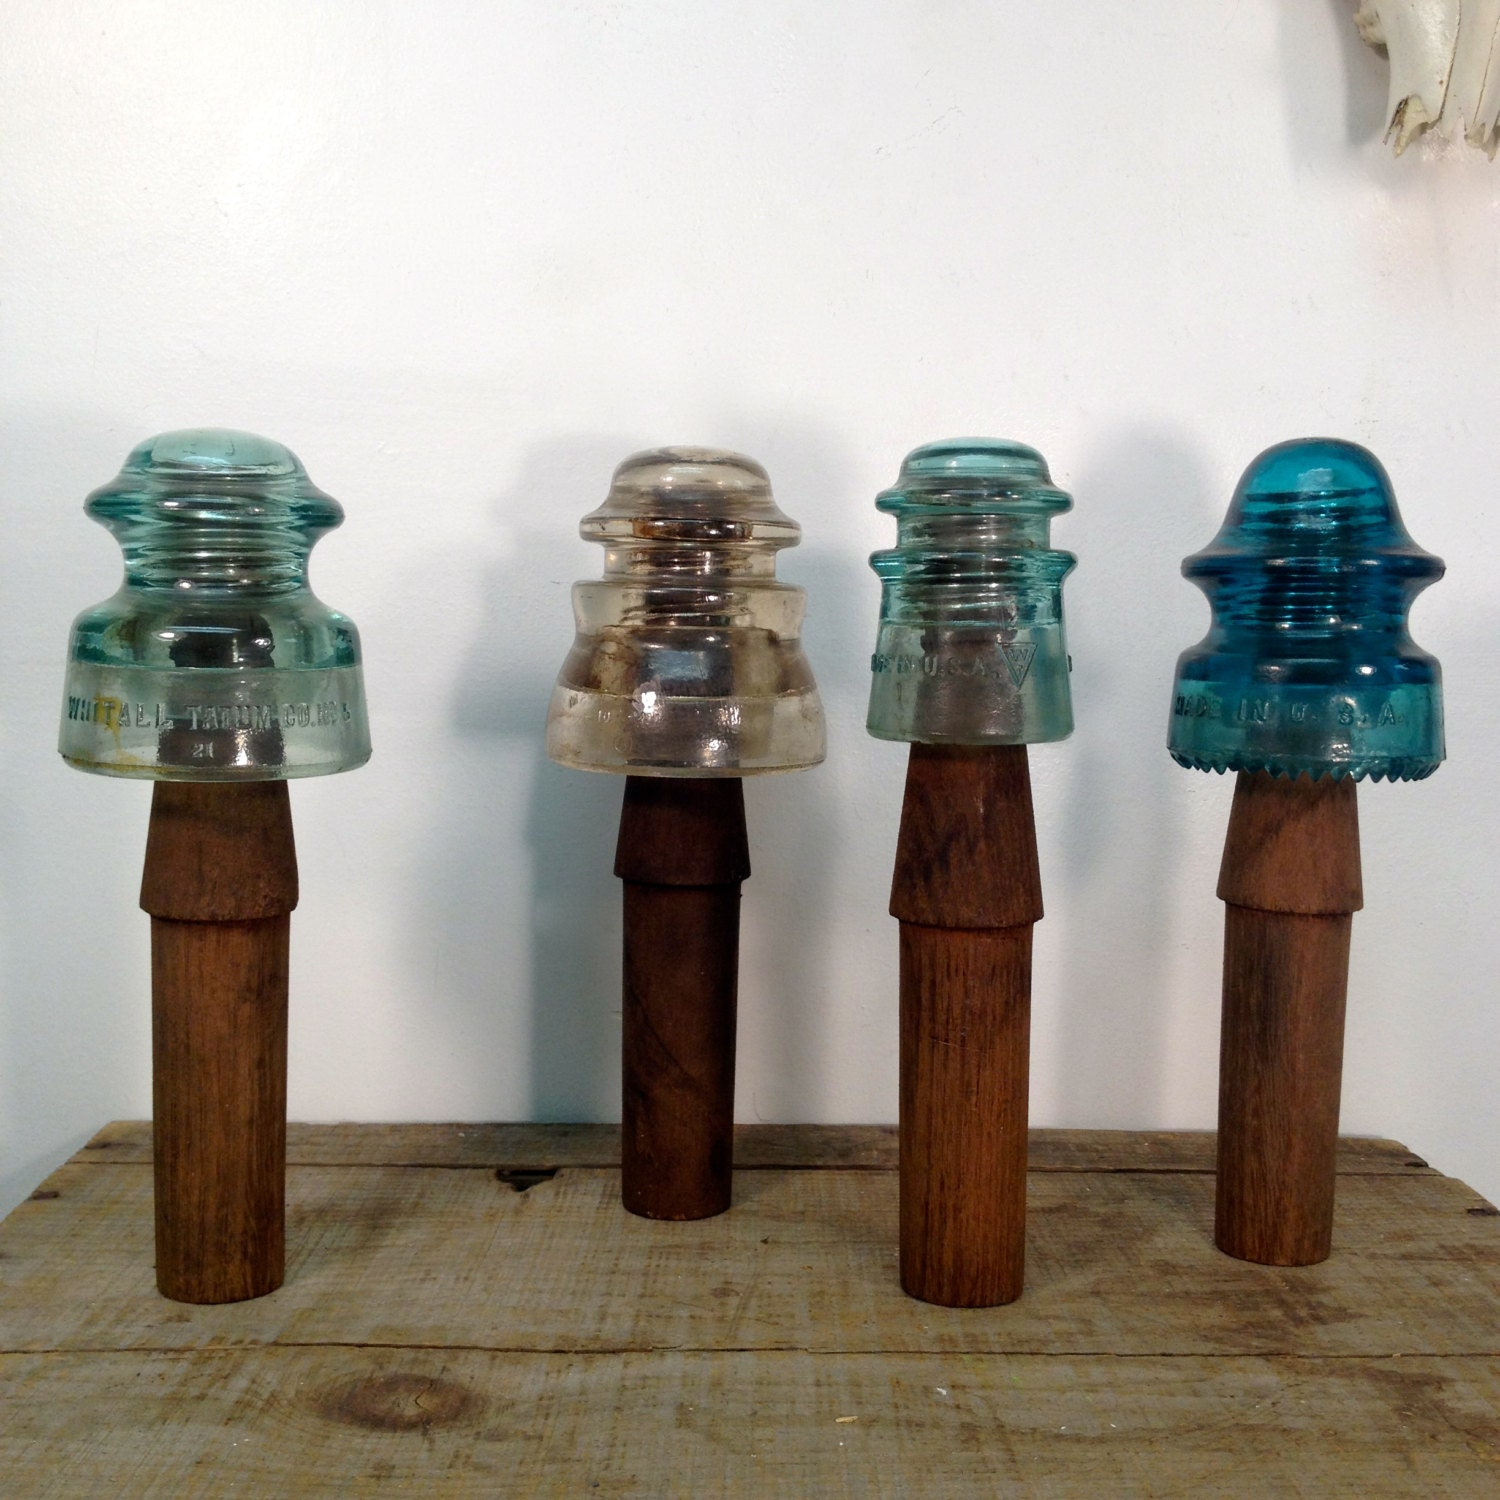 Collection of telephone pole insulators on original wooden for Glass telephone pole insulators